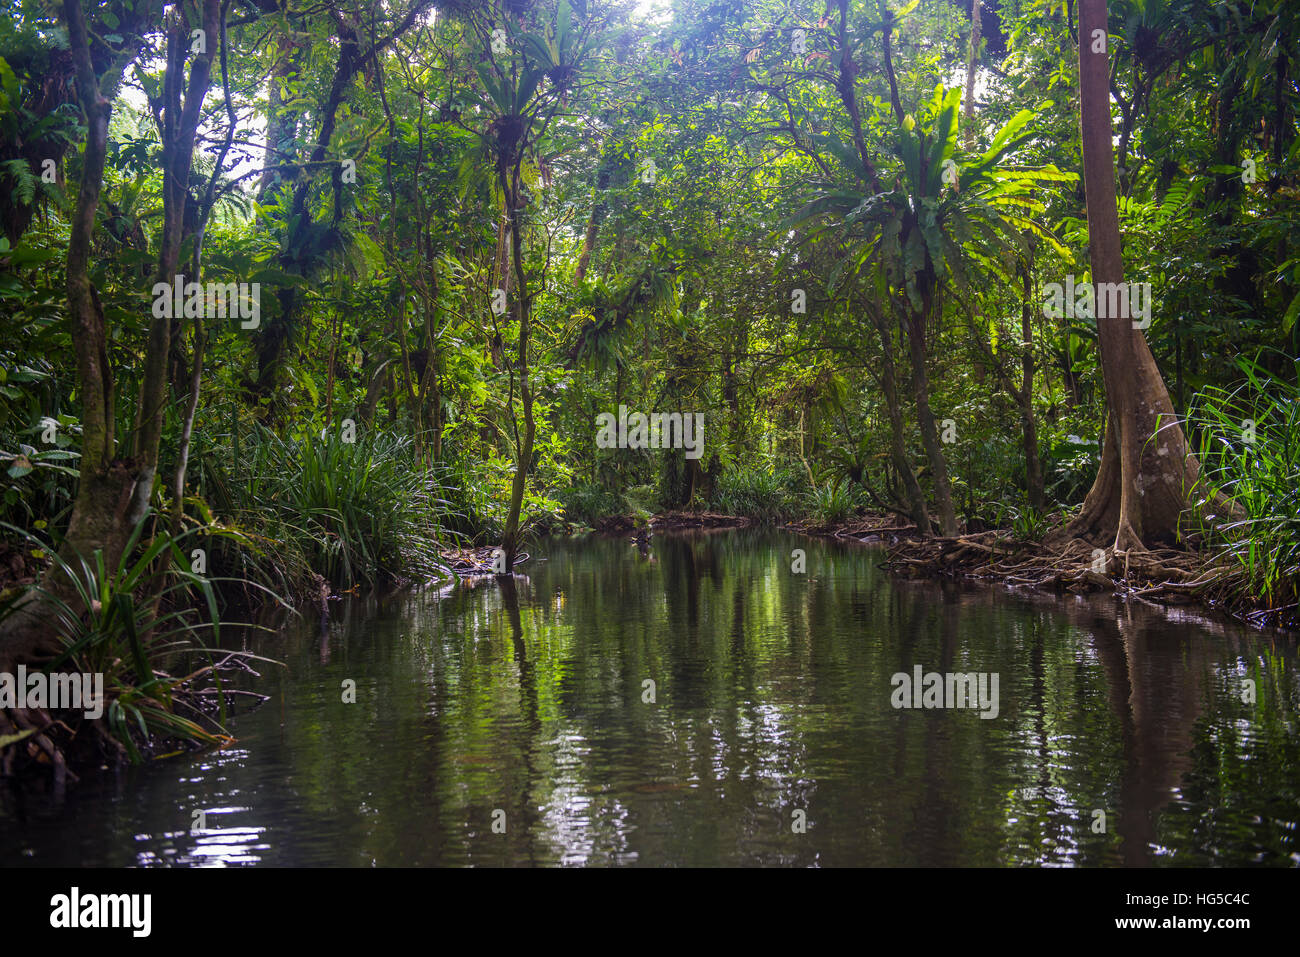 Yela Ka forest conservation area of ka trees in the Yela Valley, Kosrae, Federated States of Micronesia, South Pacific - Stock Image